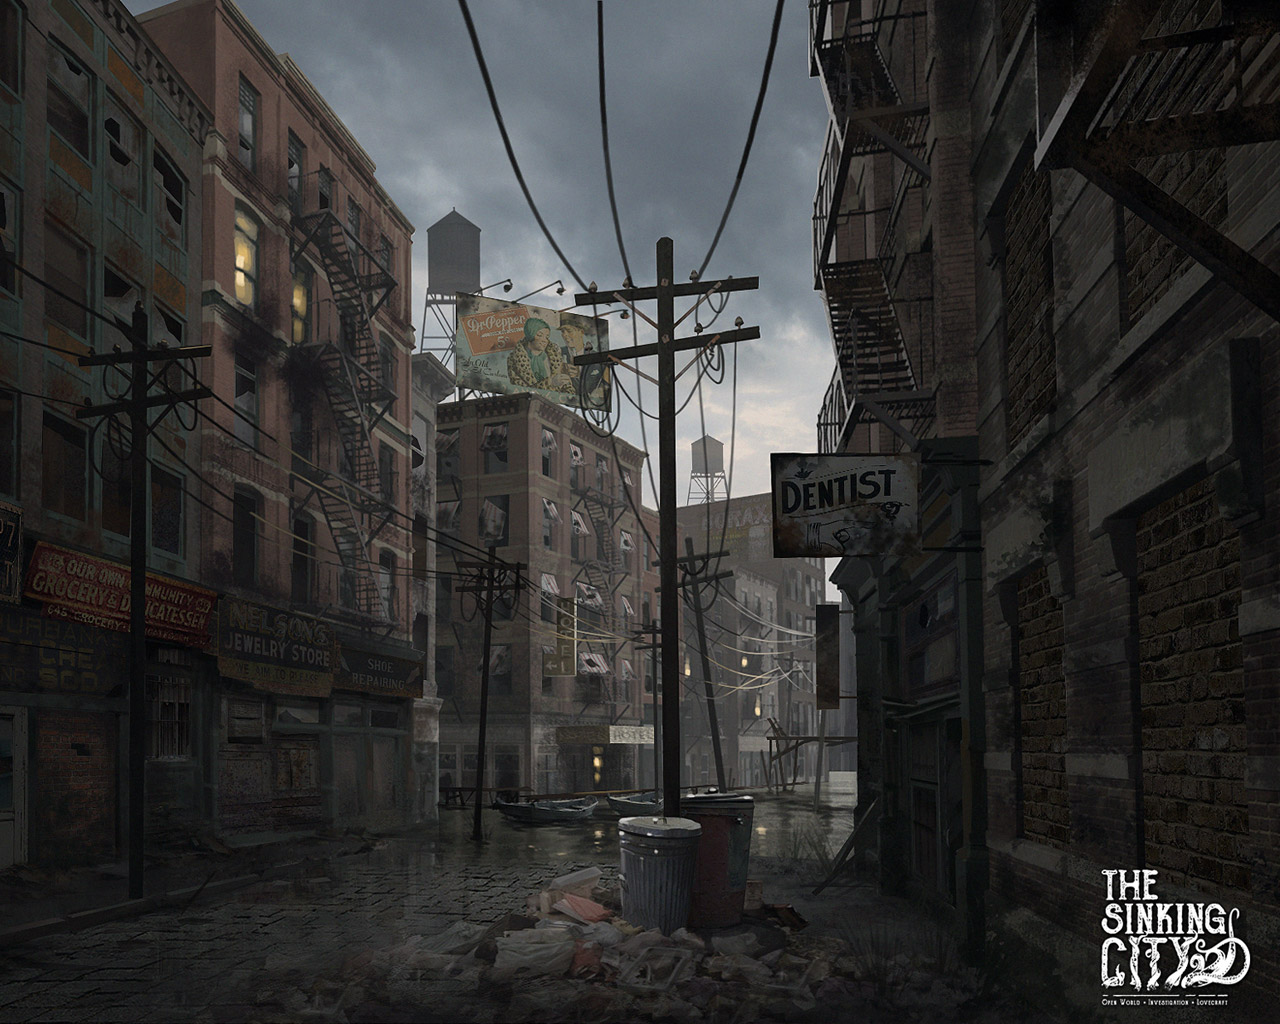 Free The Sinking City Wallpaper in 1280x1024